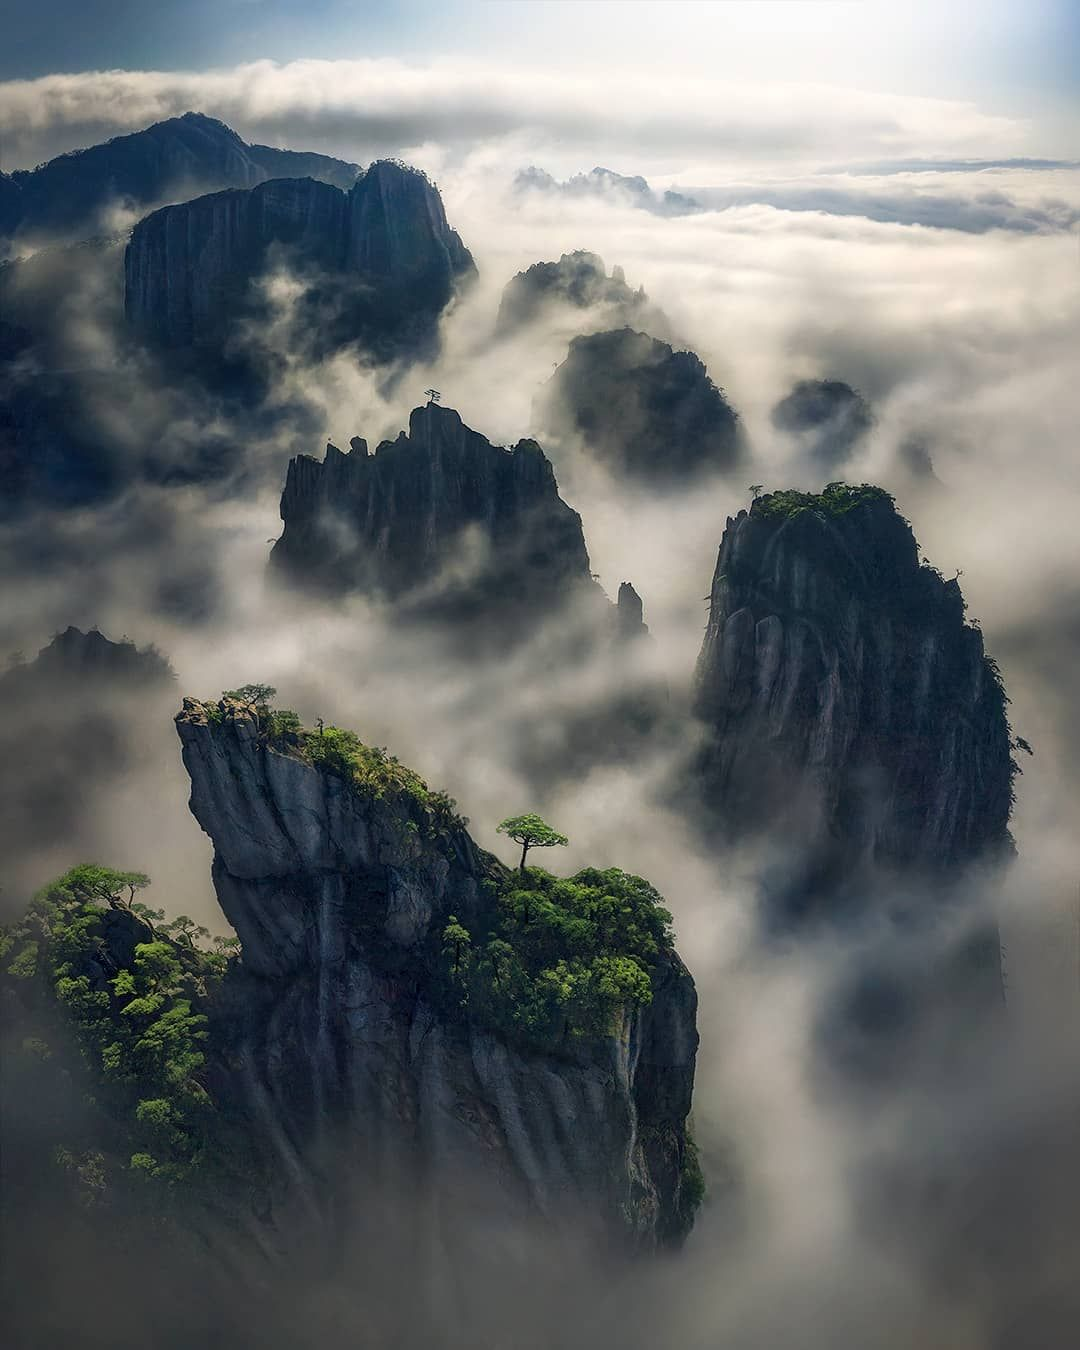 Yellow Mountain China By Max Rive 1080x1350 Px Sscouterss Https Ift Tt 2tvhmye March 08 2019 At 0 Chinese Mountains Chinese Landscape Landscape Photography